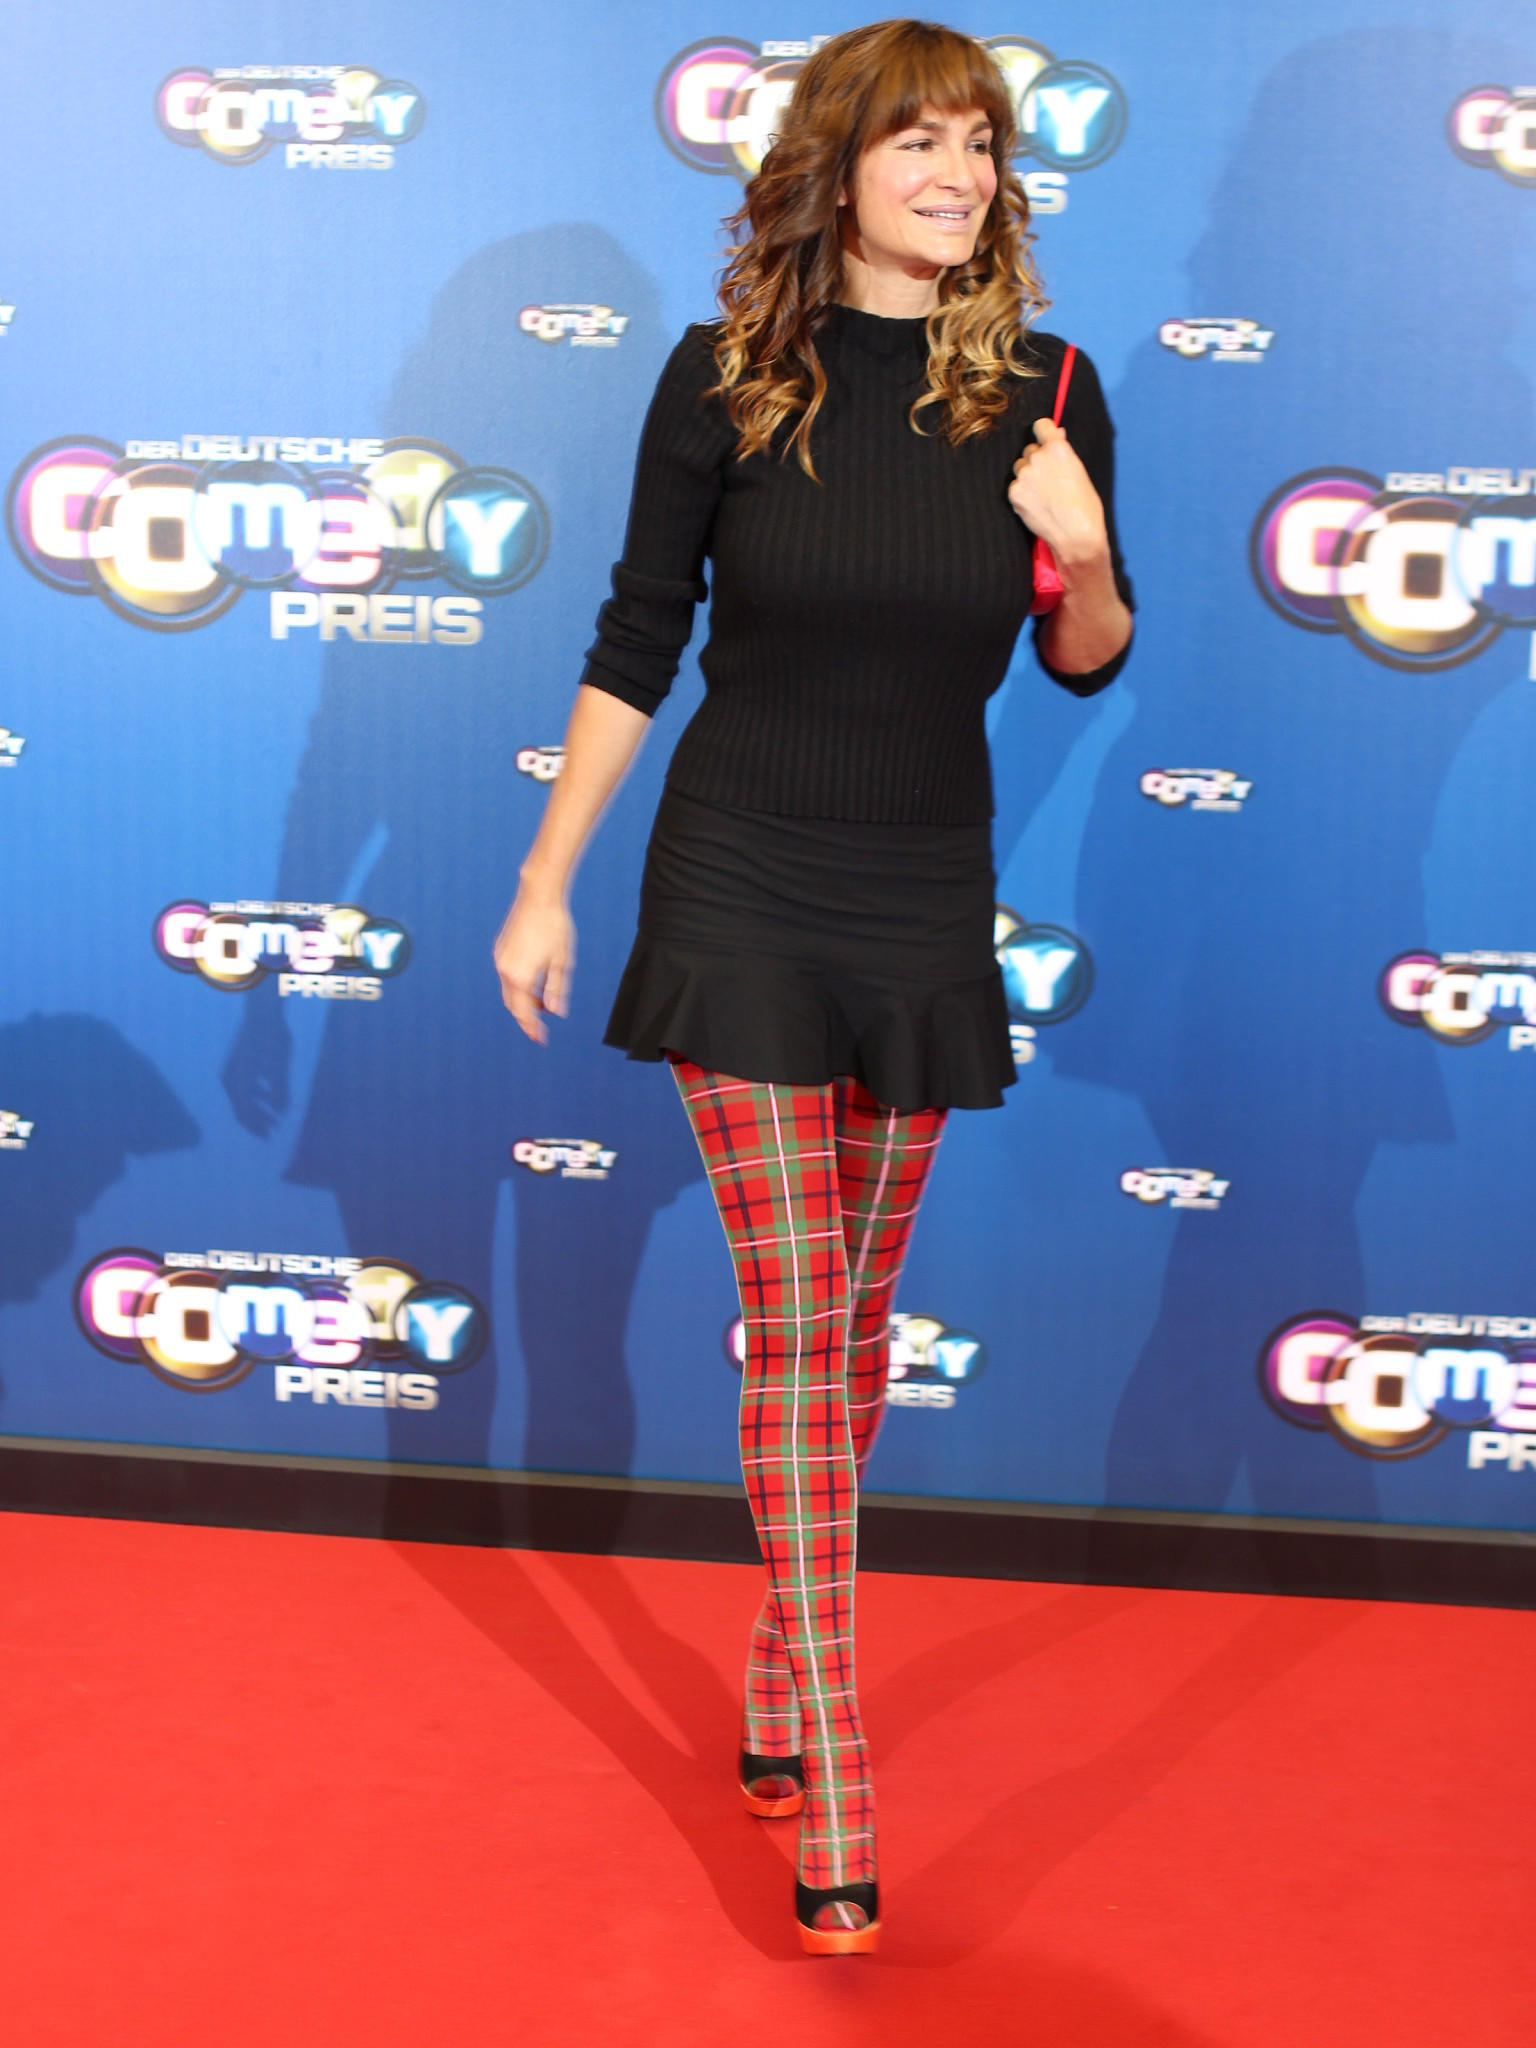 Comedypreis 2013 Hingucker Highlights